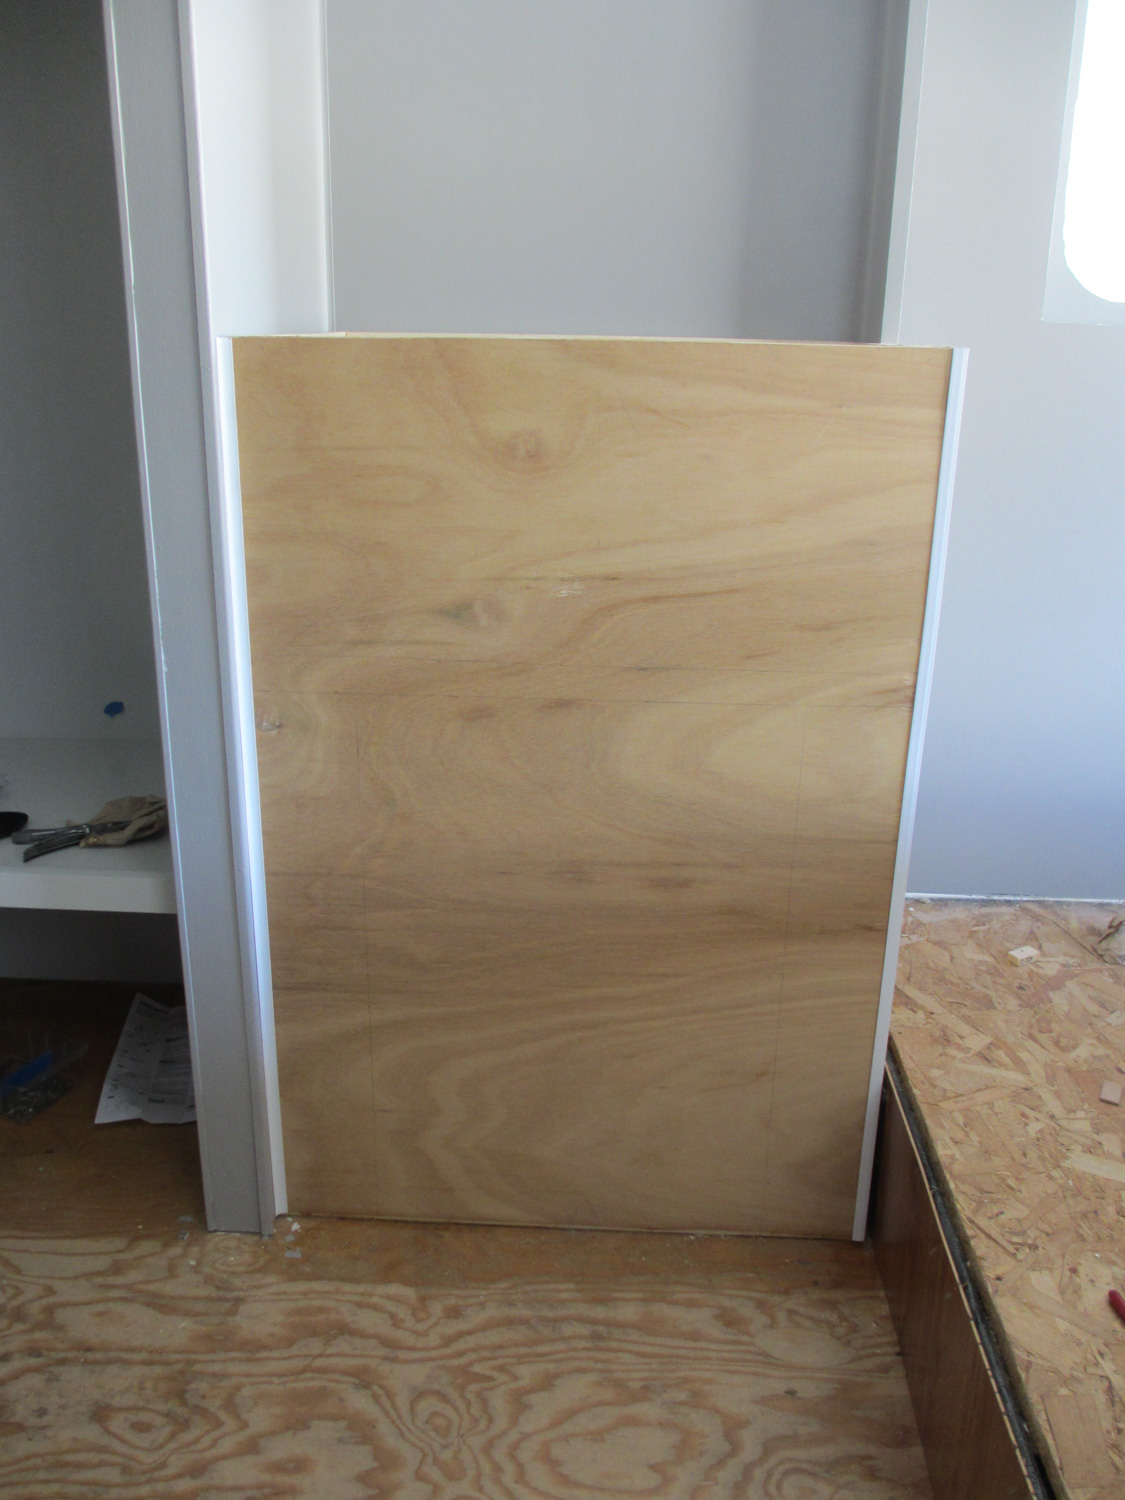 The bathroom cabinet with sides on.